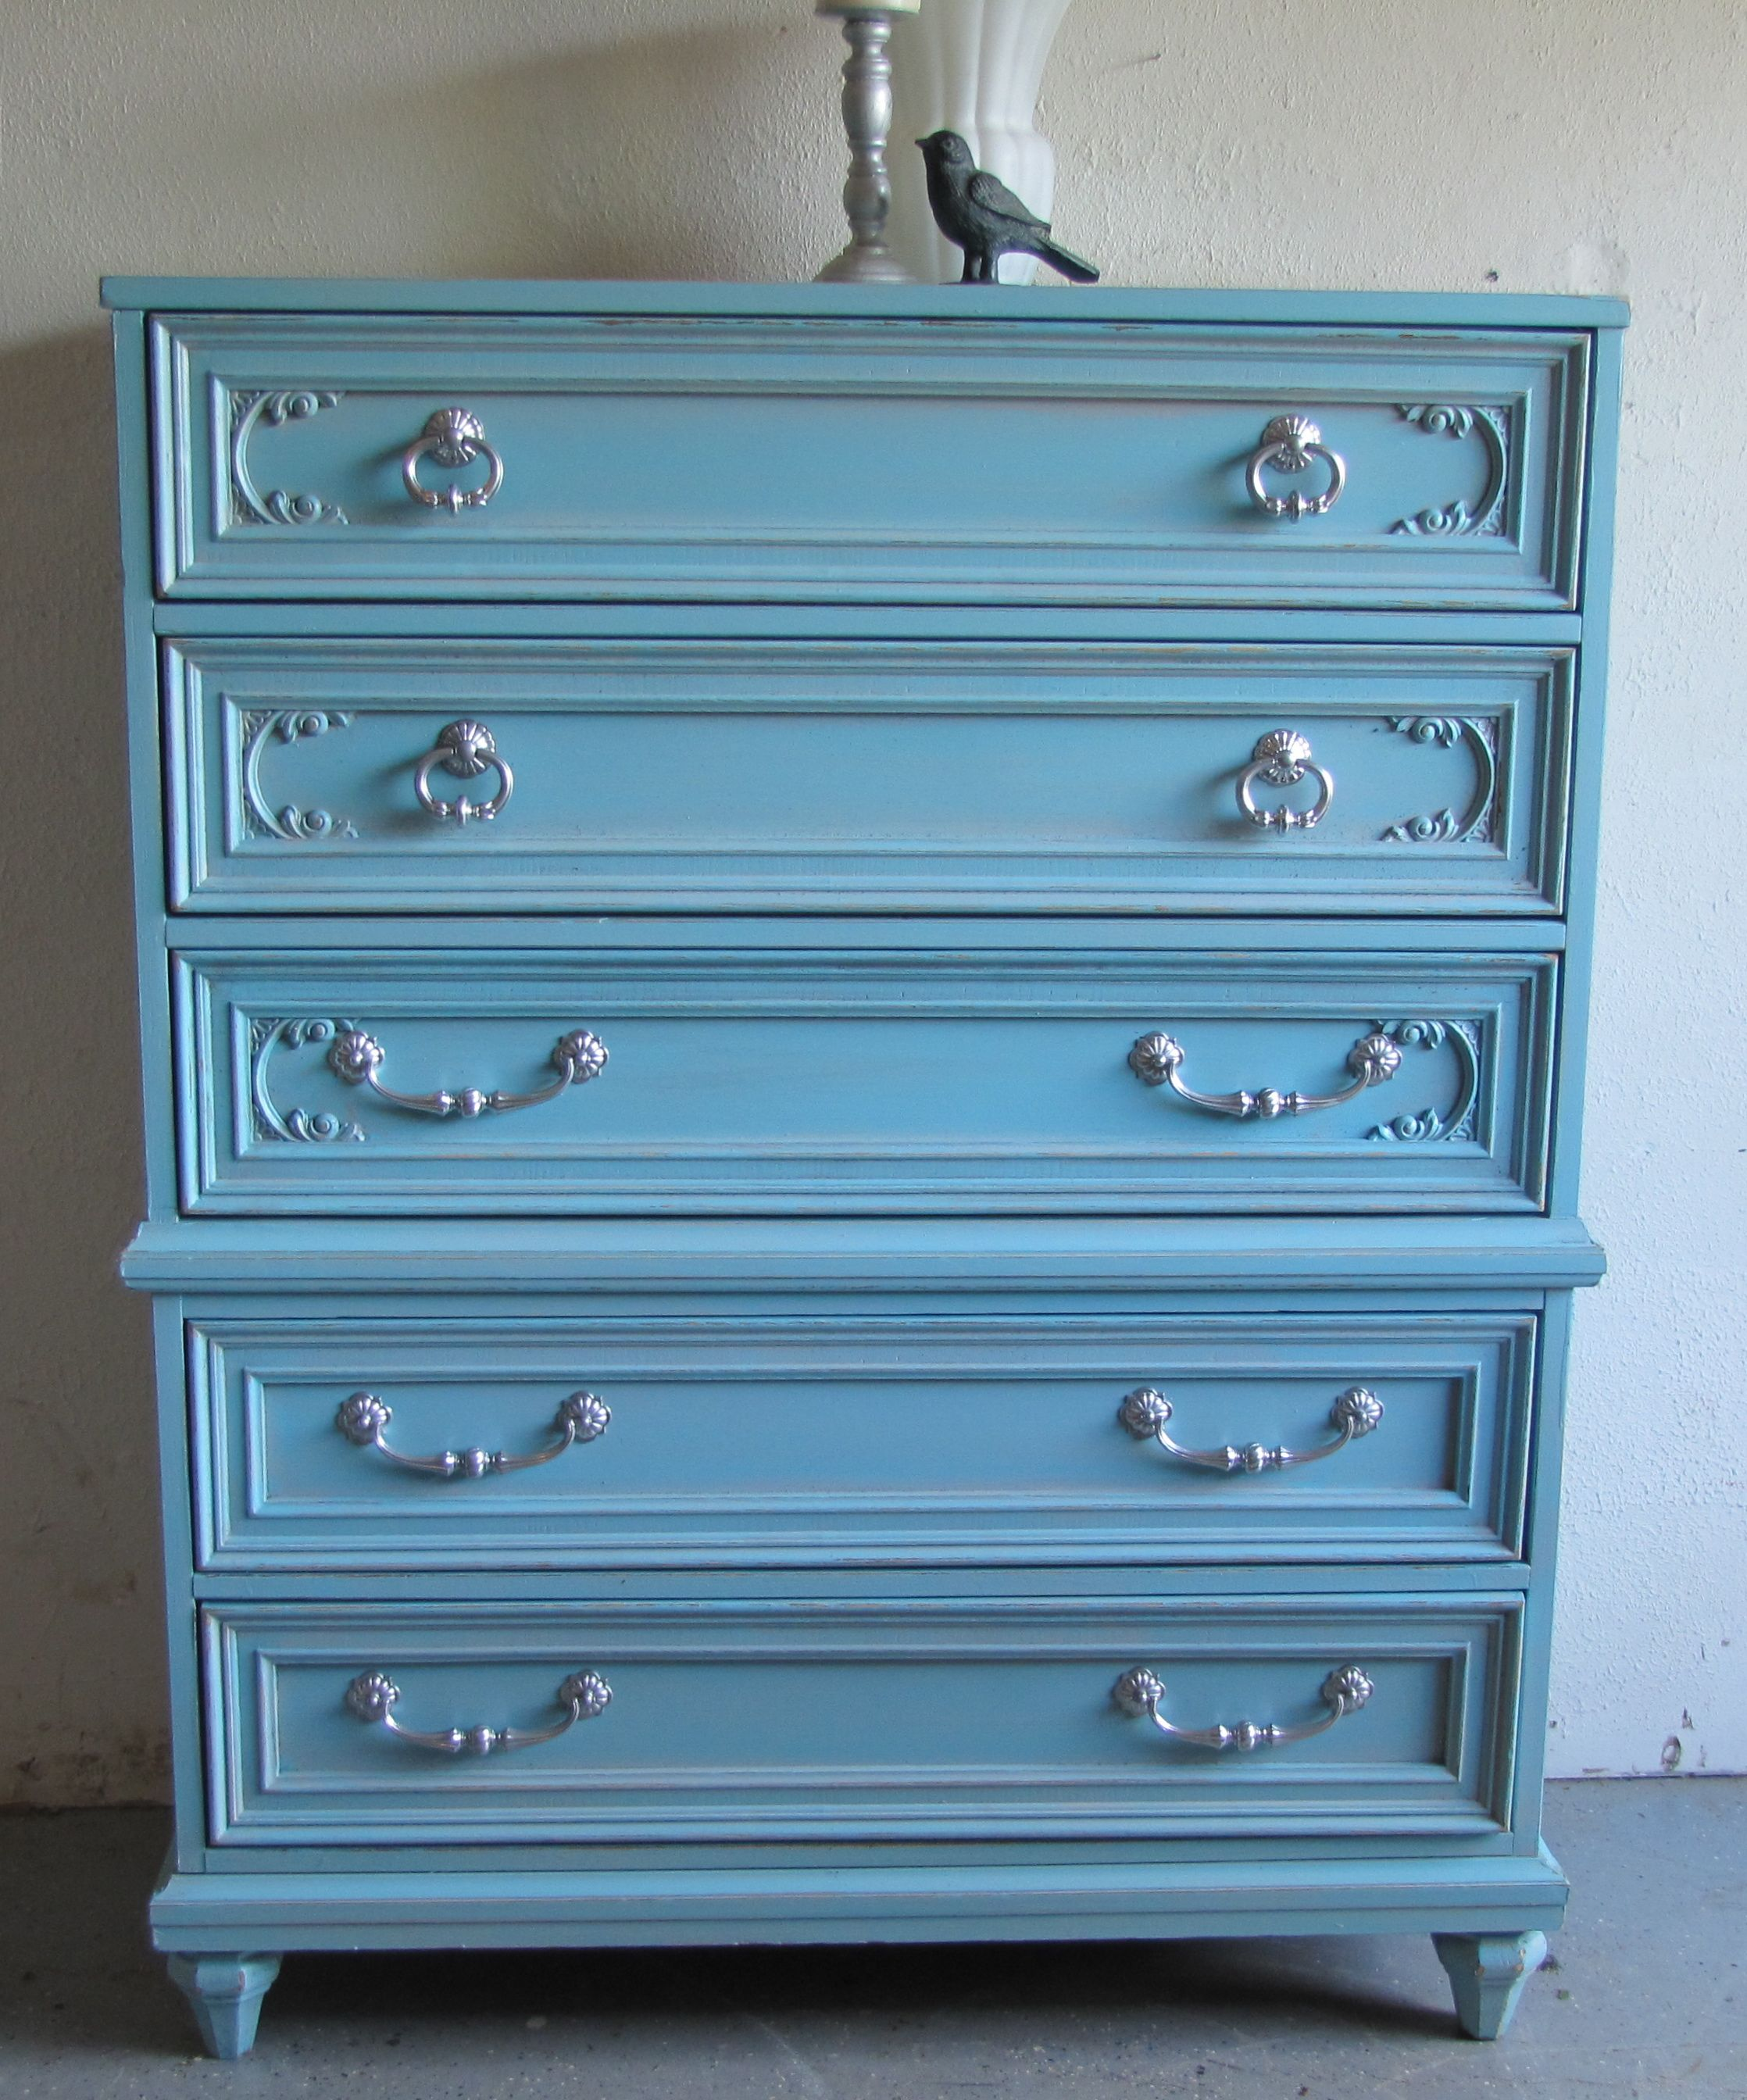 Vintage bassett tiffany blue distressed dresser with silver metallic glaze